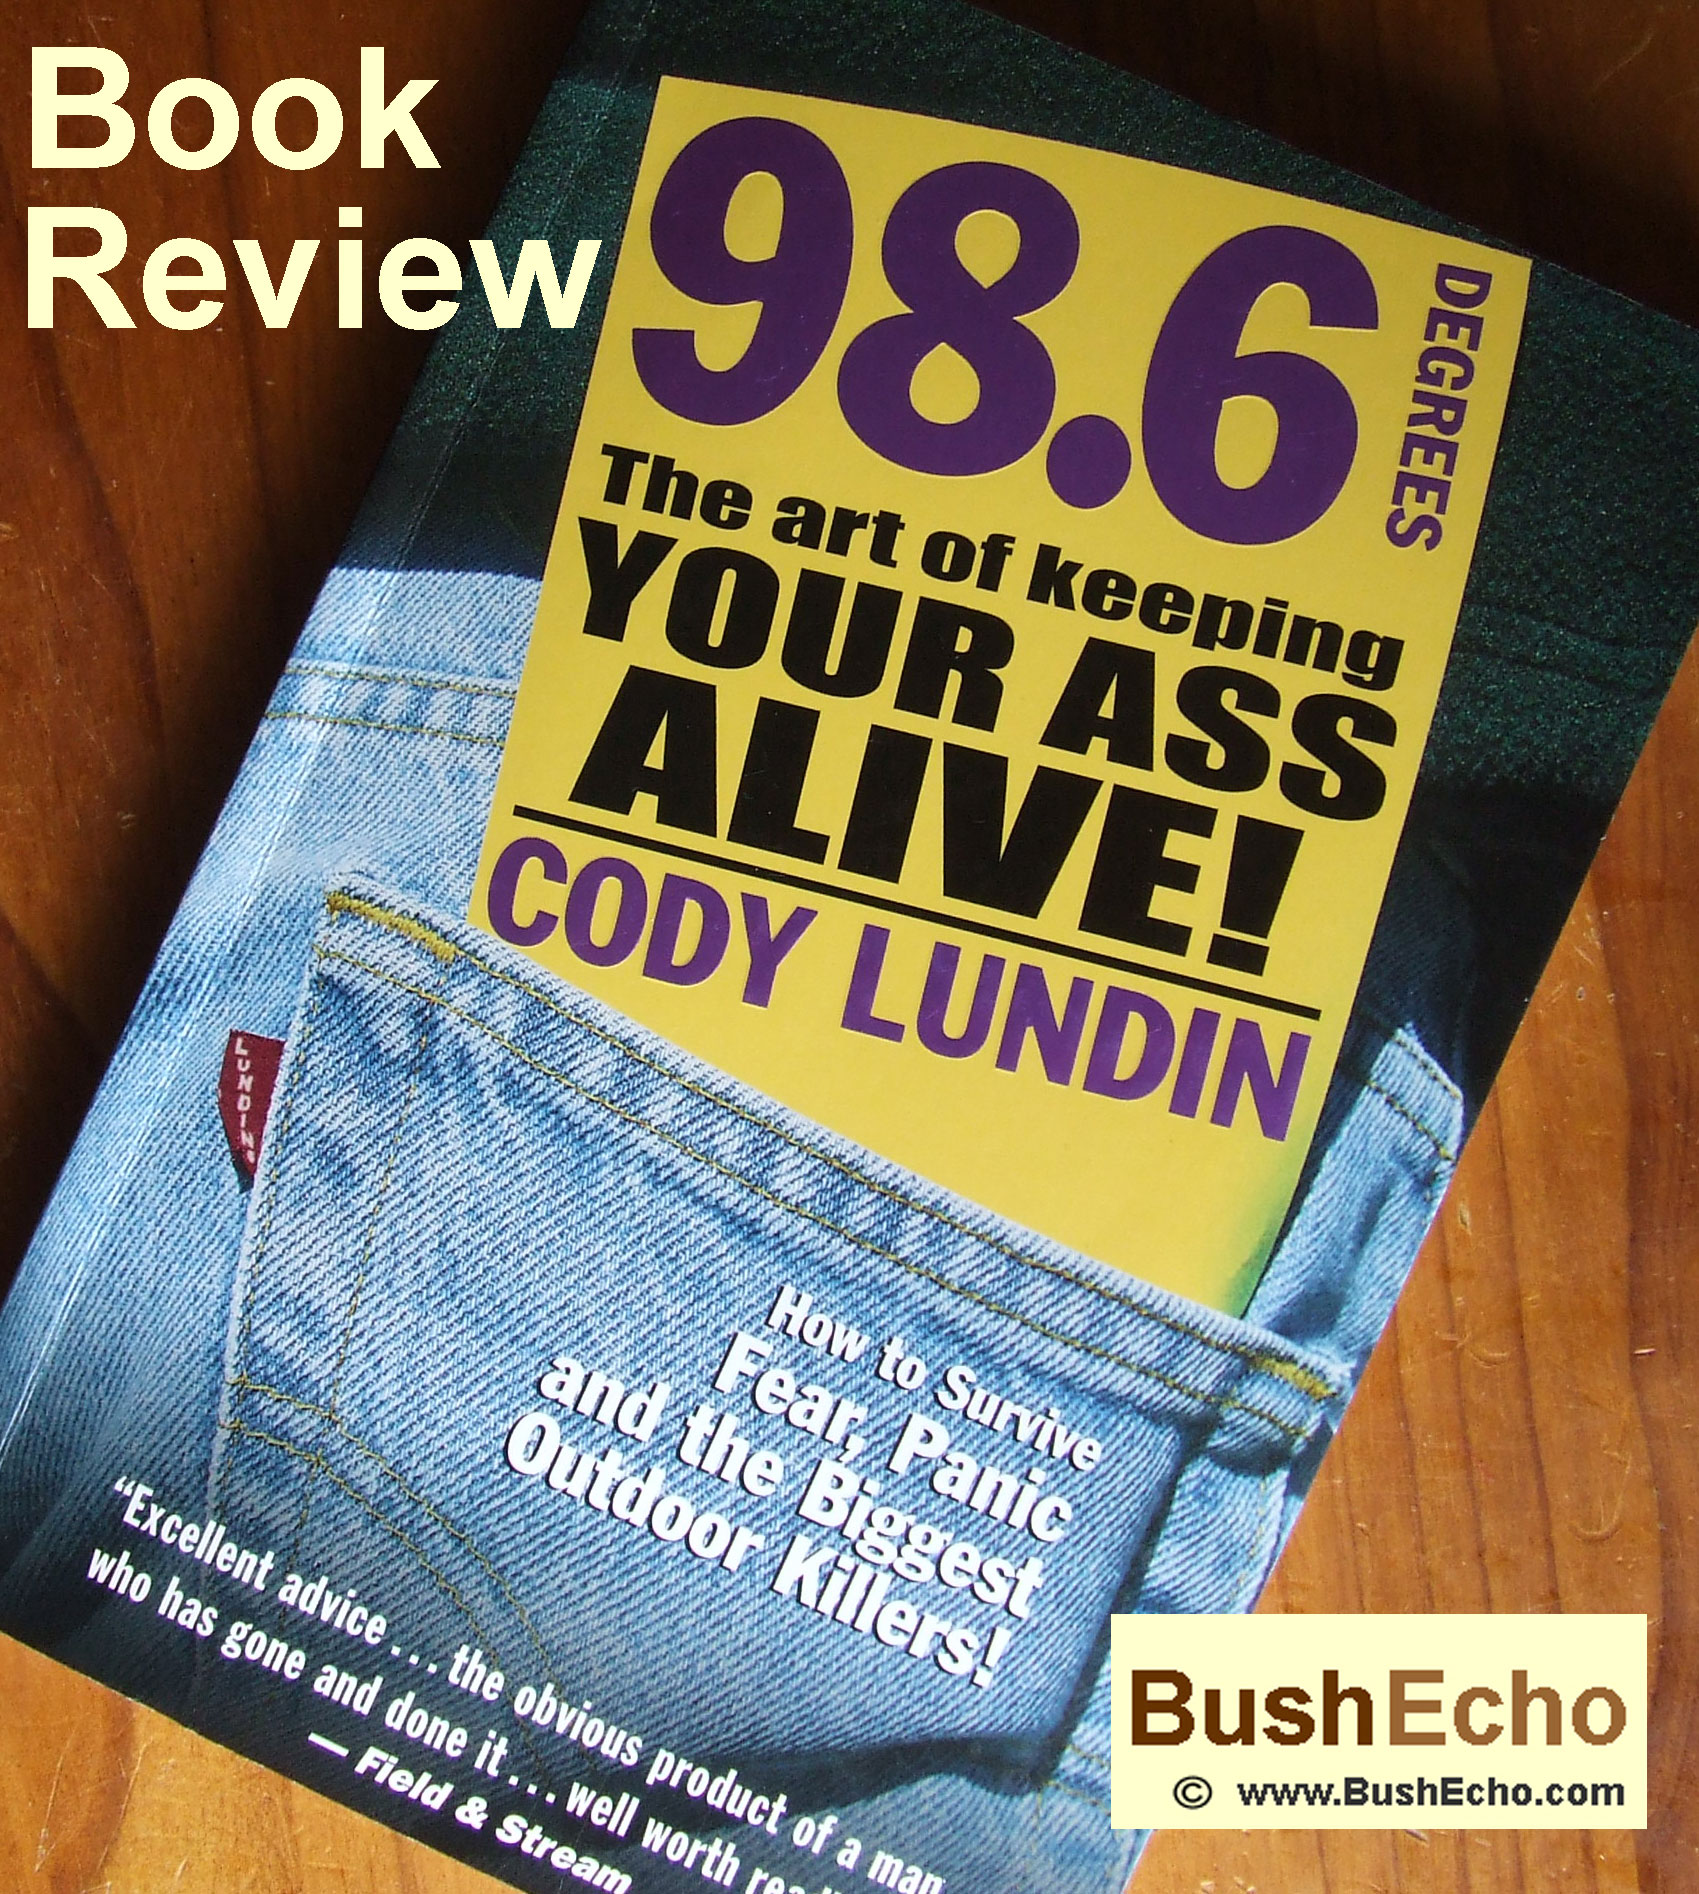 Survival Book Review – 98.6 Degrees, Cody Lundin.